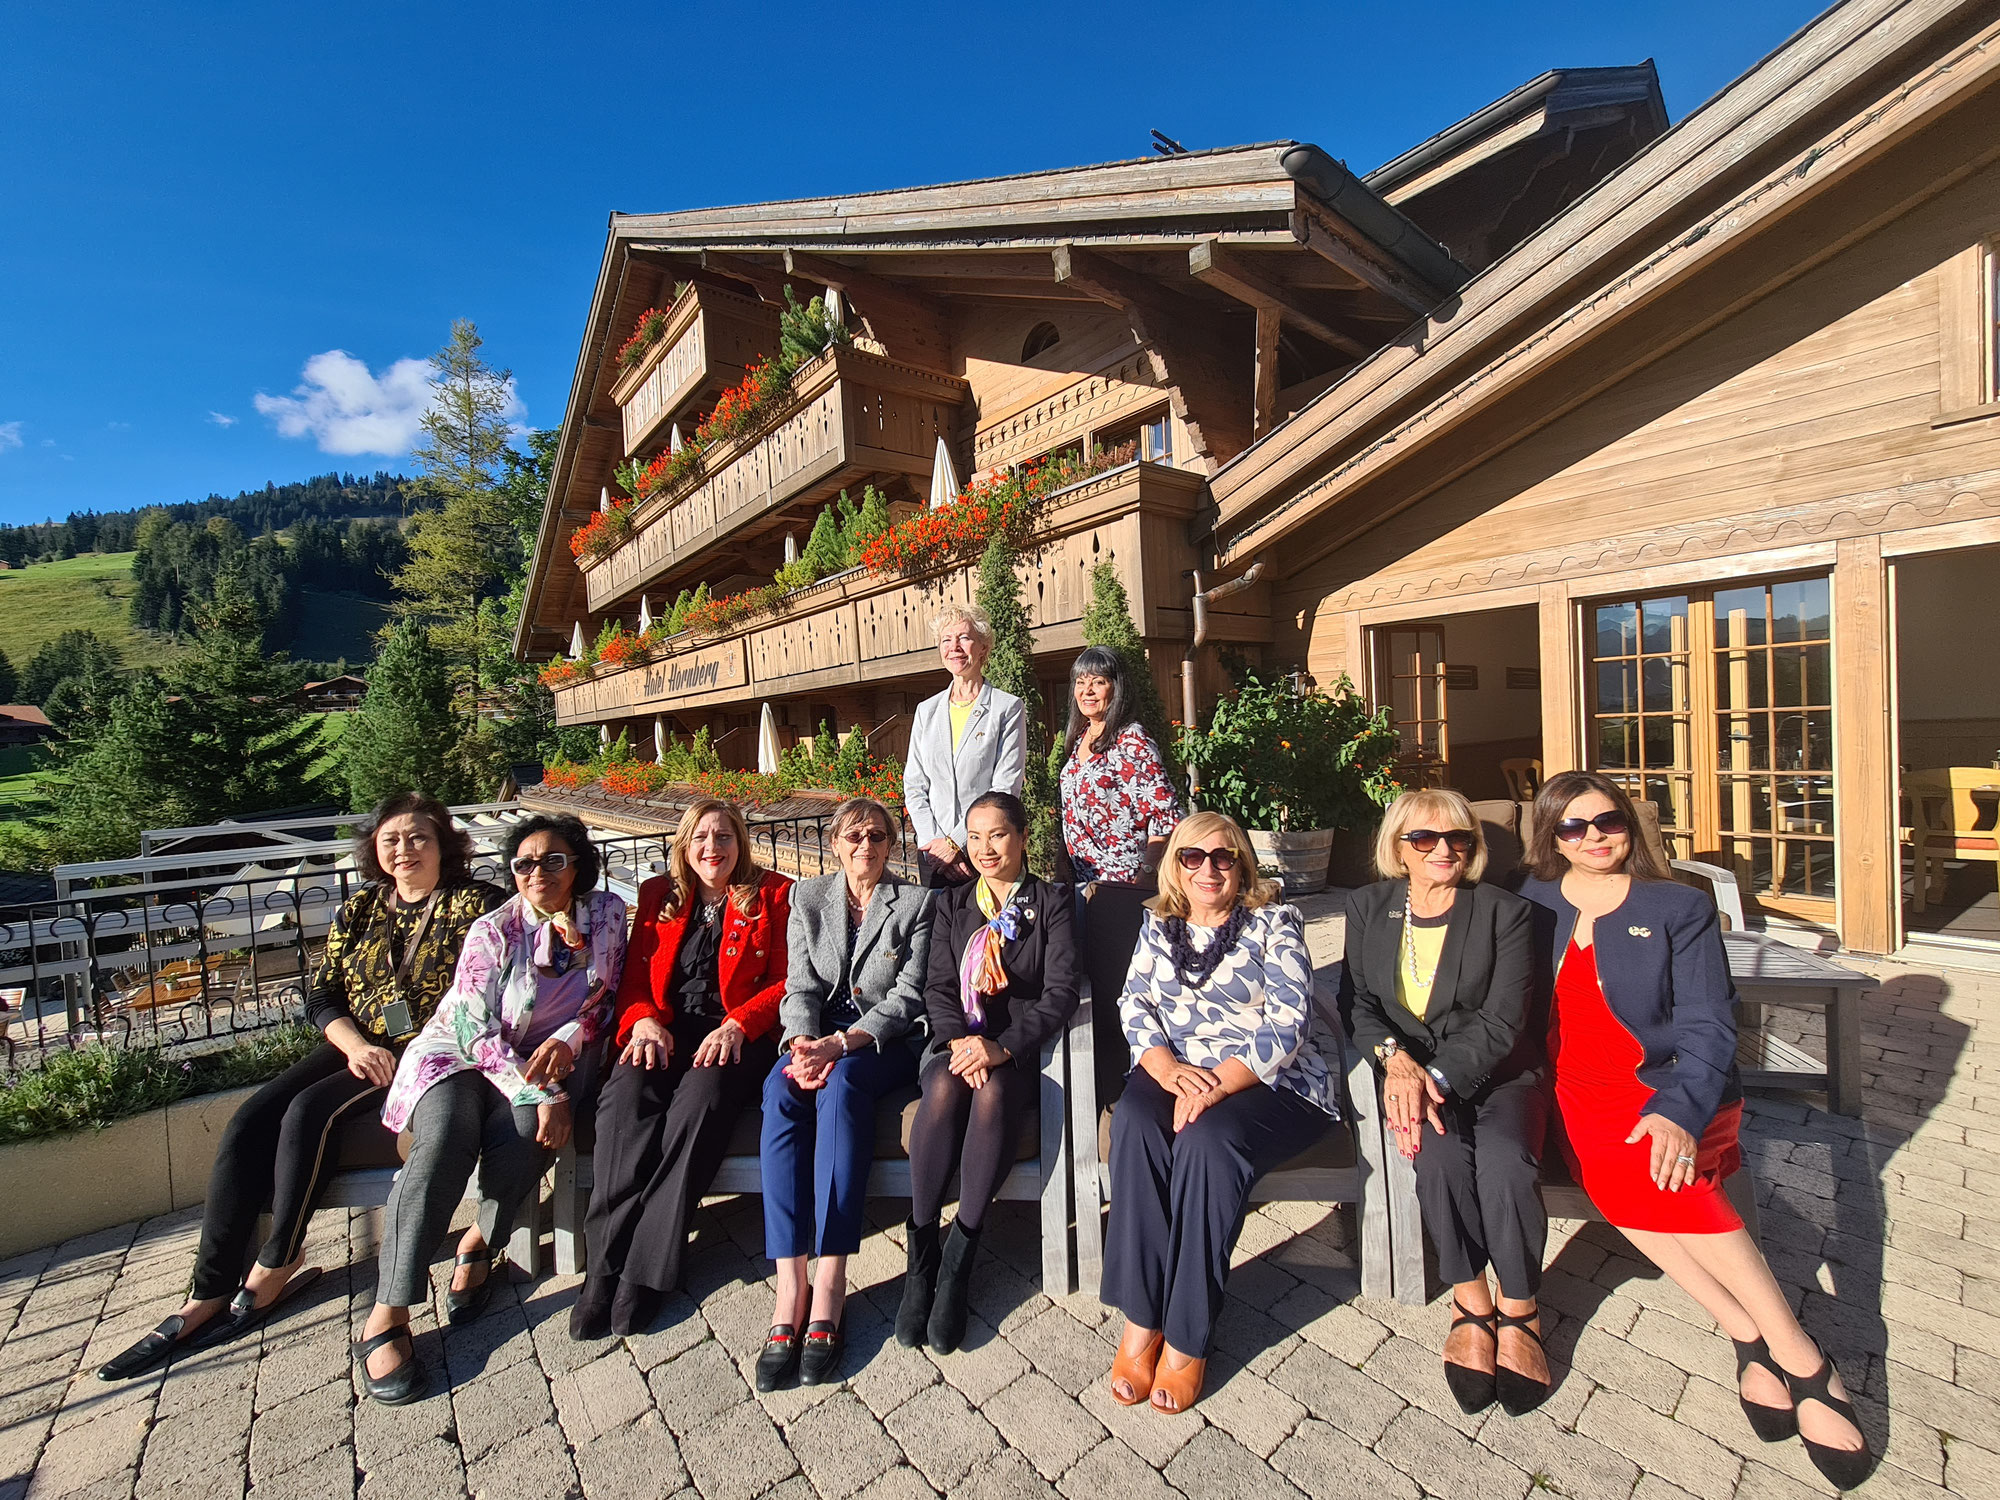 Photogallery of the Executive Board Meeting in Switzerland